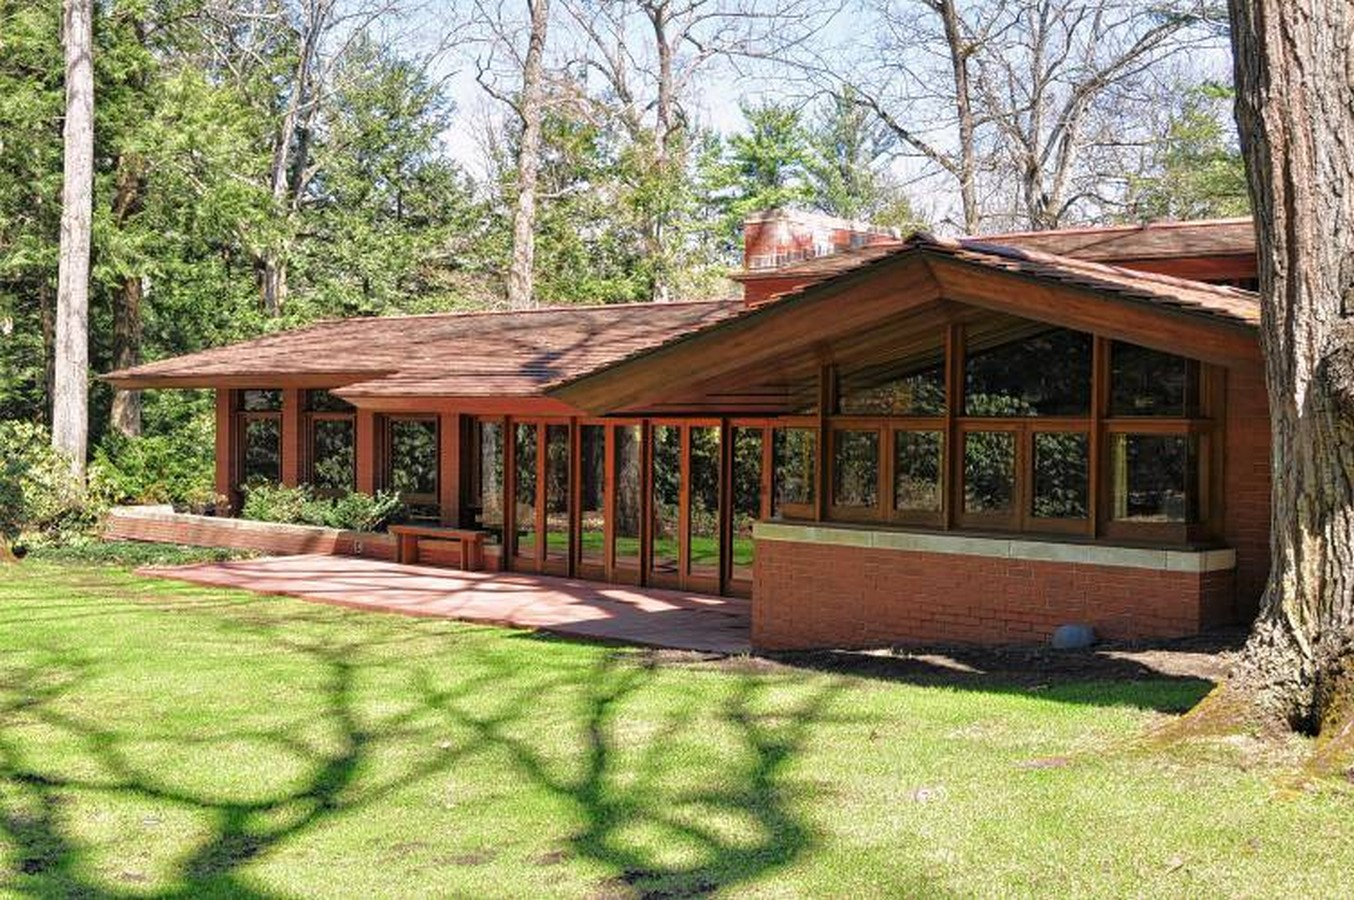 An overview of Usonian architecture - Sheet5